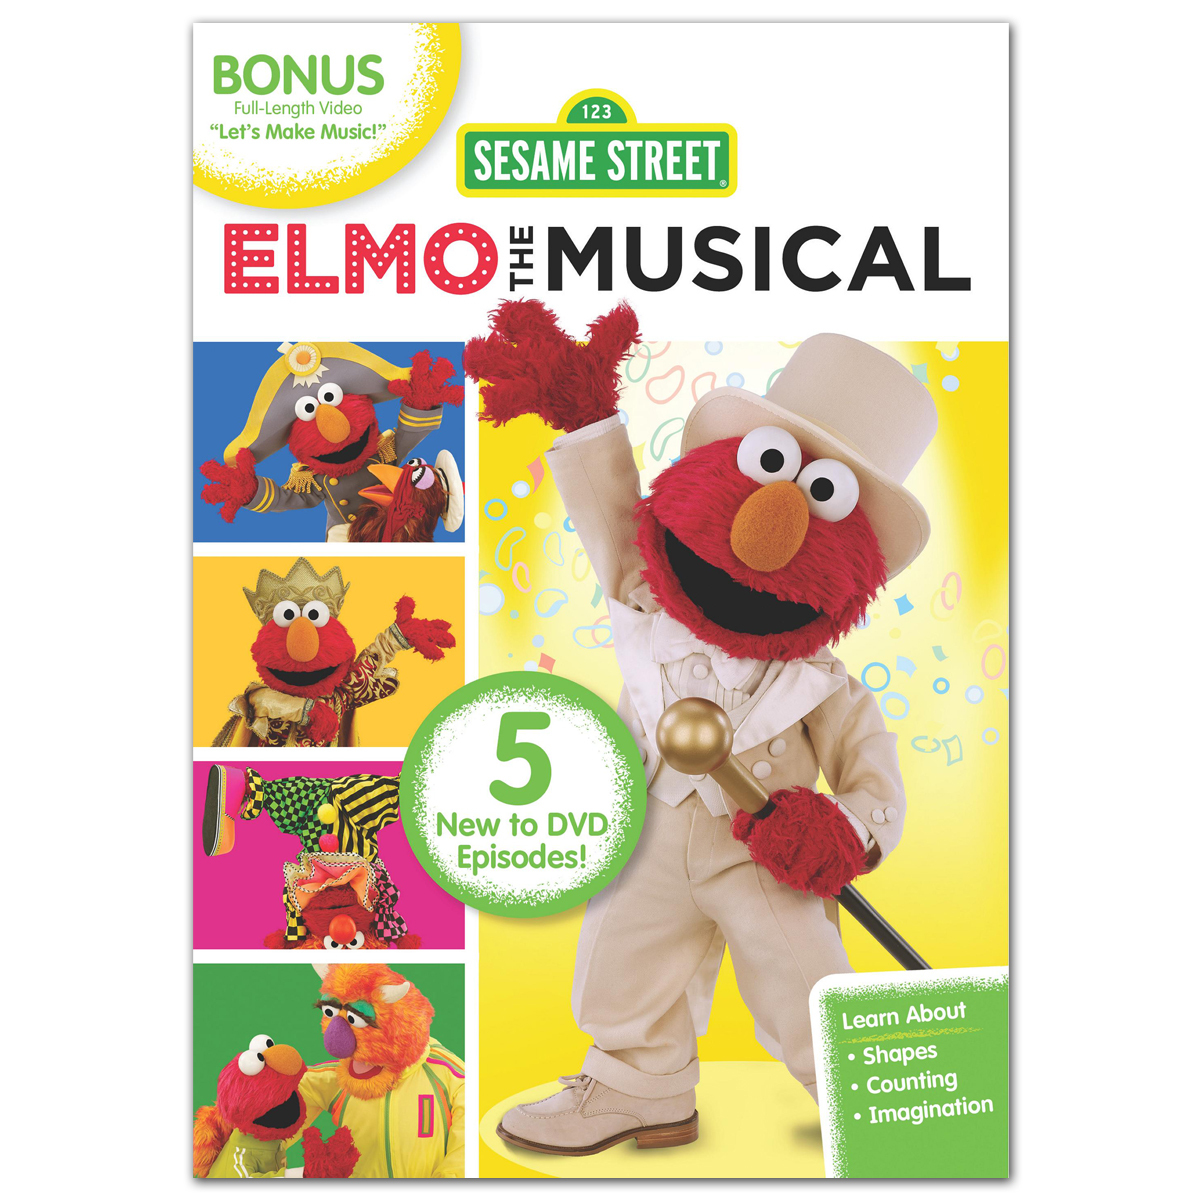 Sesame Street: Elmo the Musical DVD